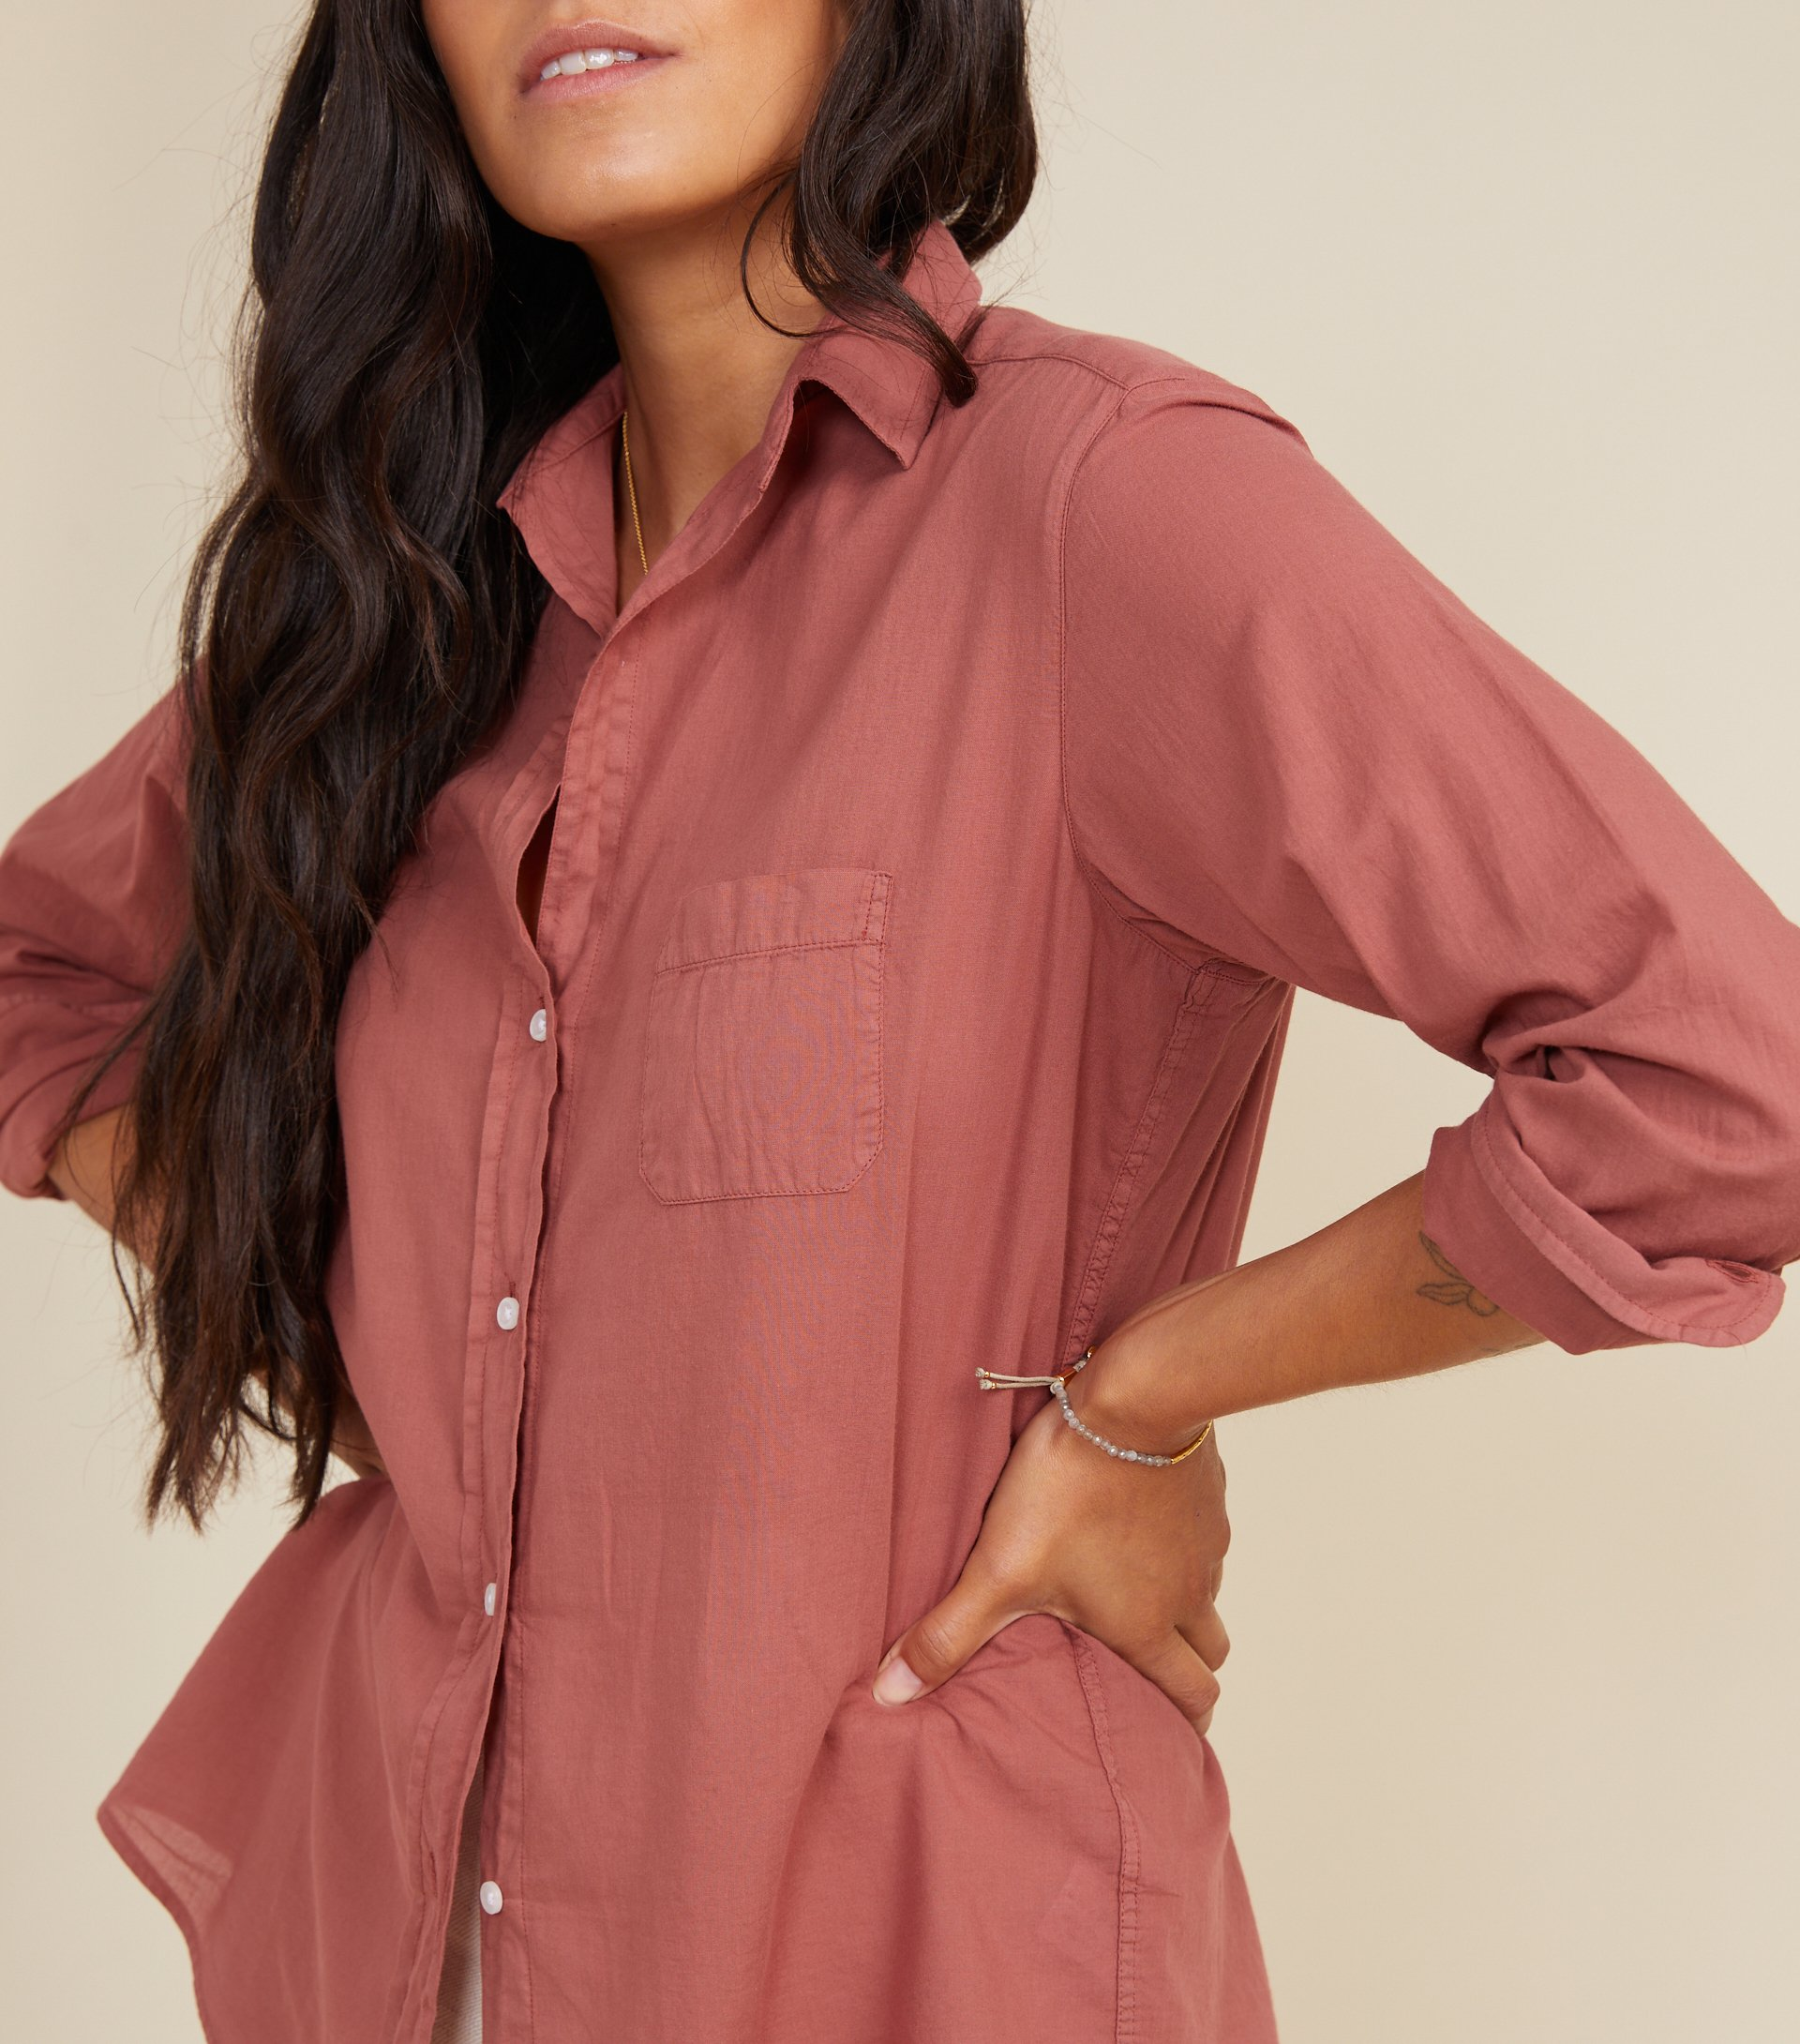 Image of The Hero Button-Up Shirt Rosewood, Tissue Cotton